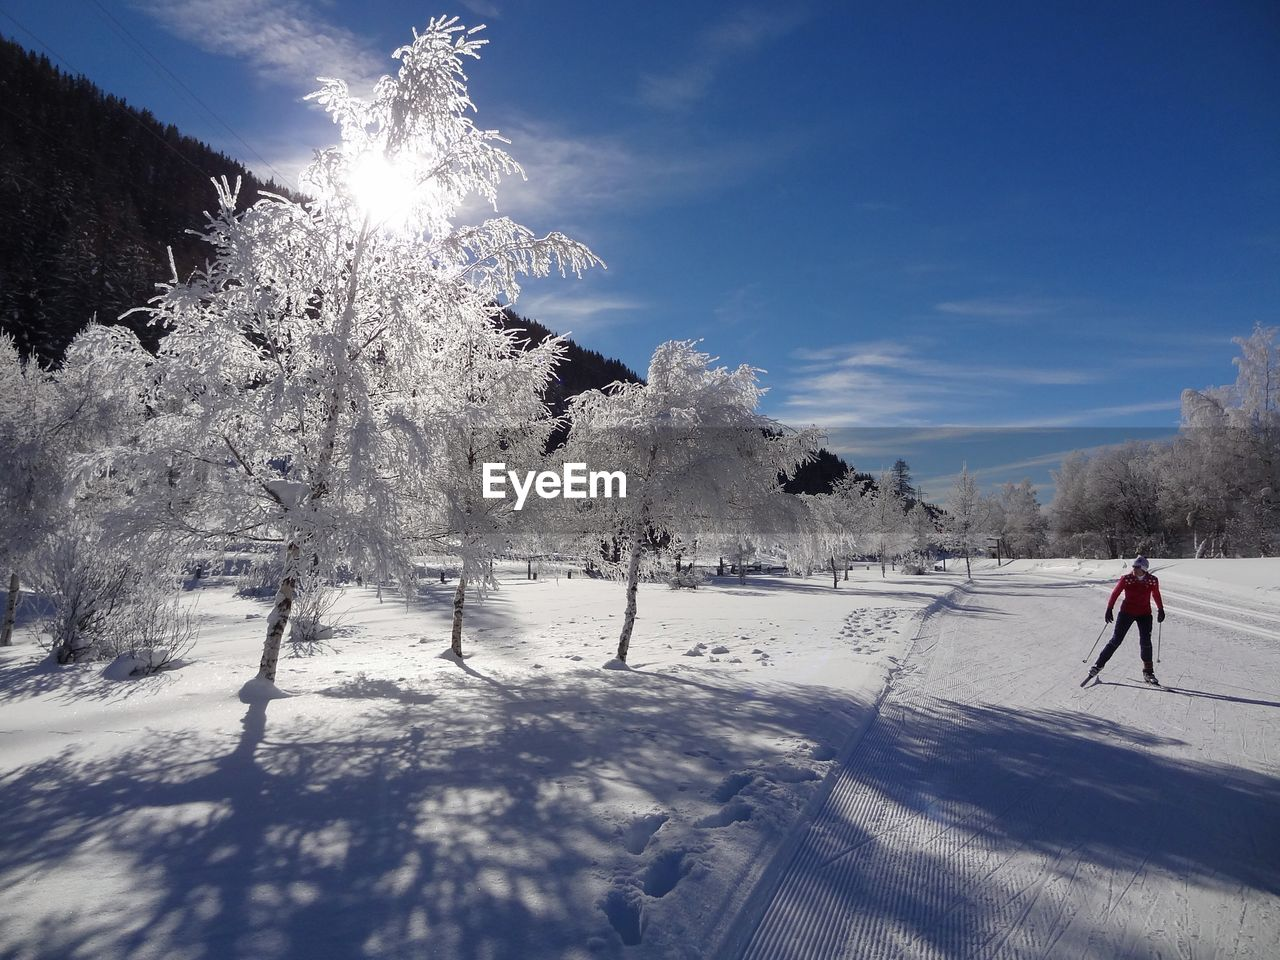 Person skiing on snowcapped landscape during winter